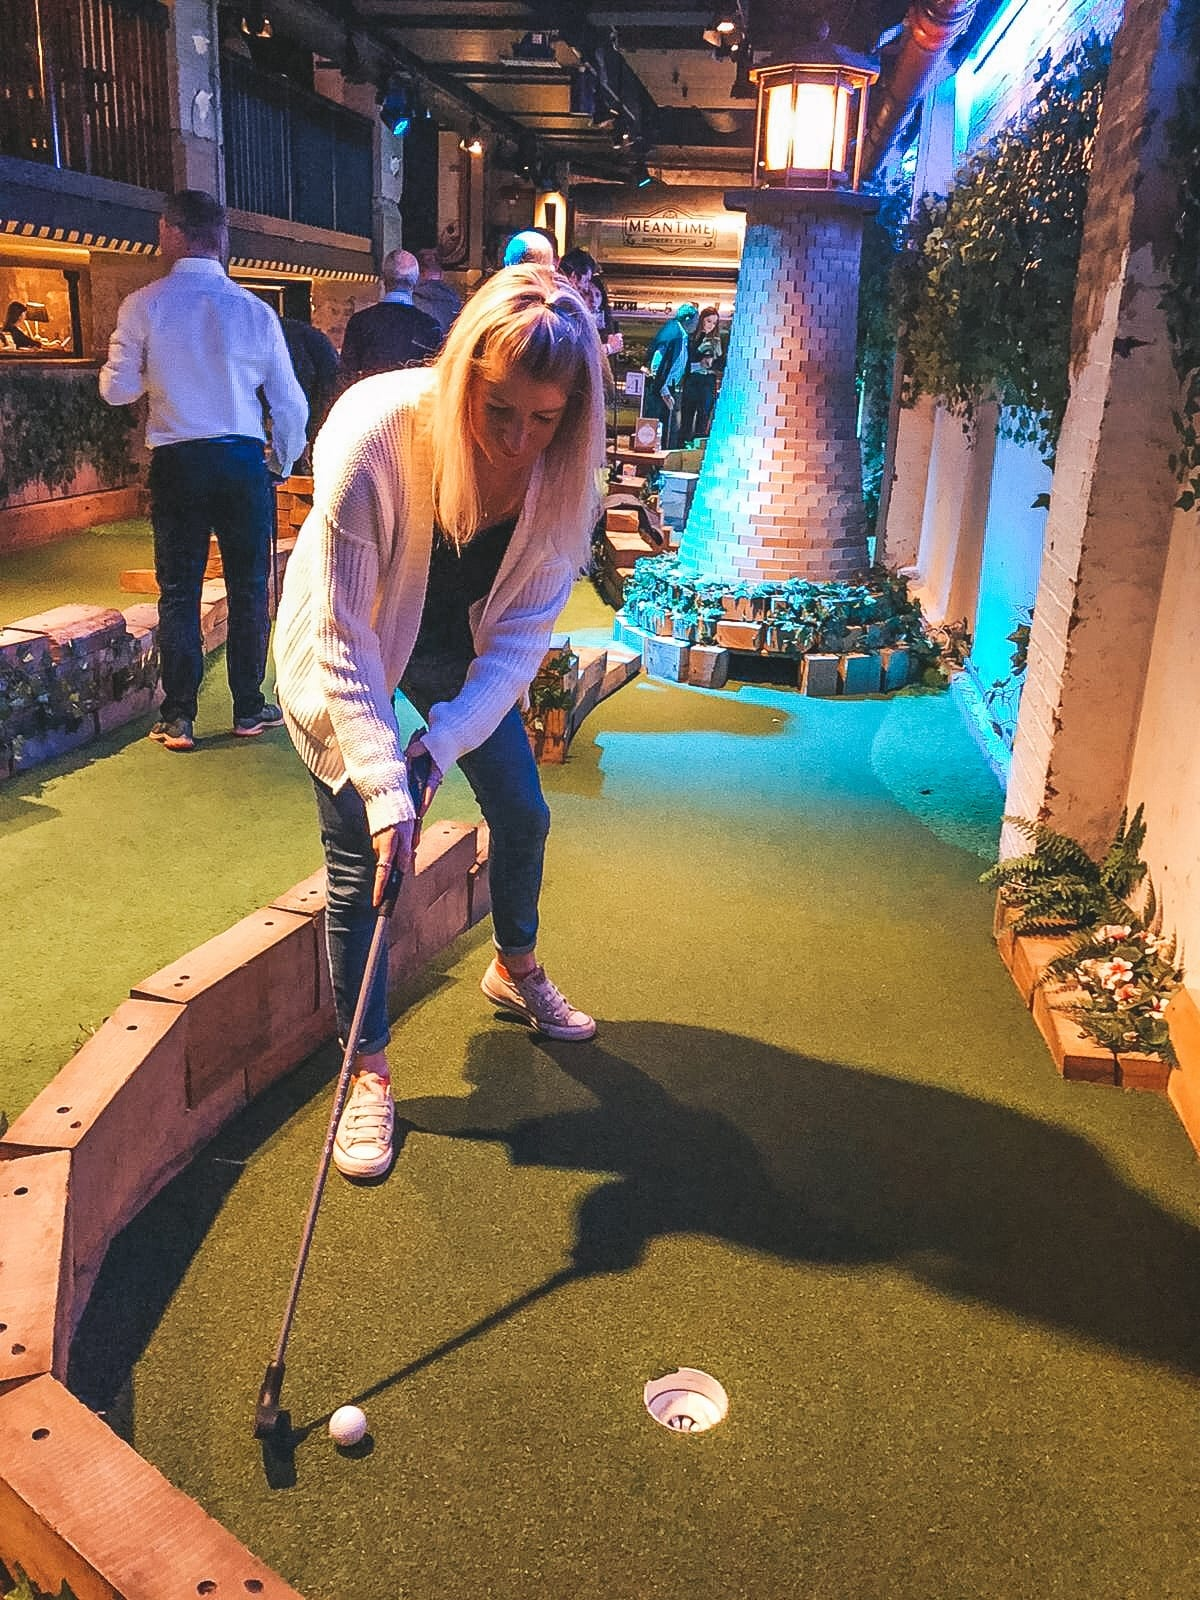 Swingers mini golf London